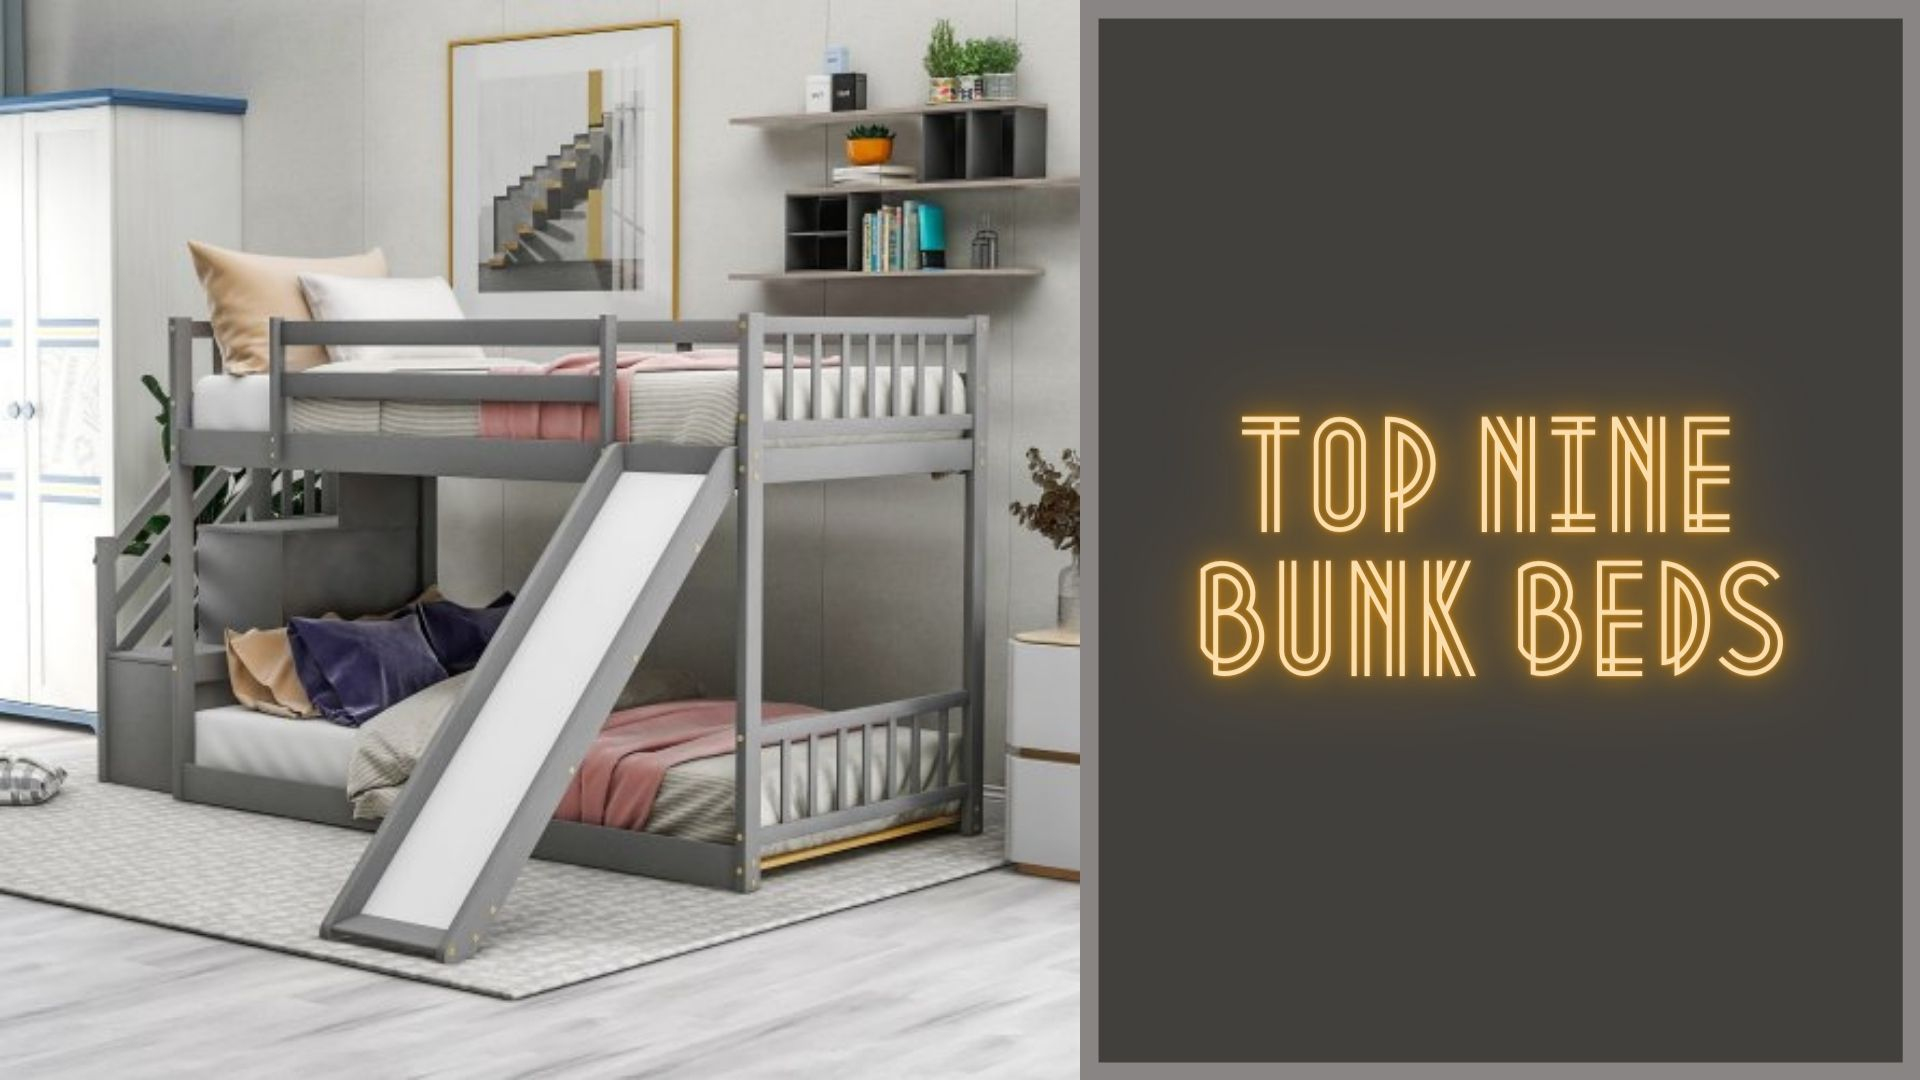 Top 9 bunk beds for toddler and kids